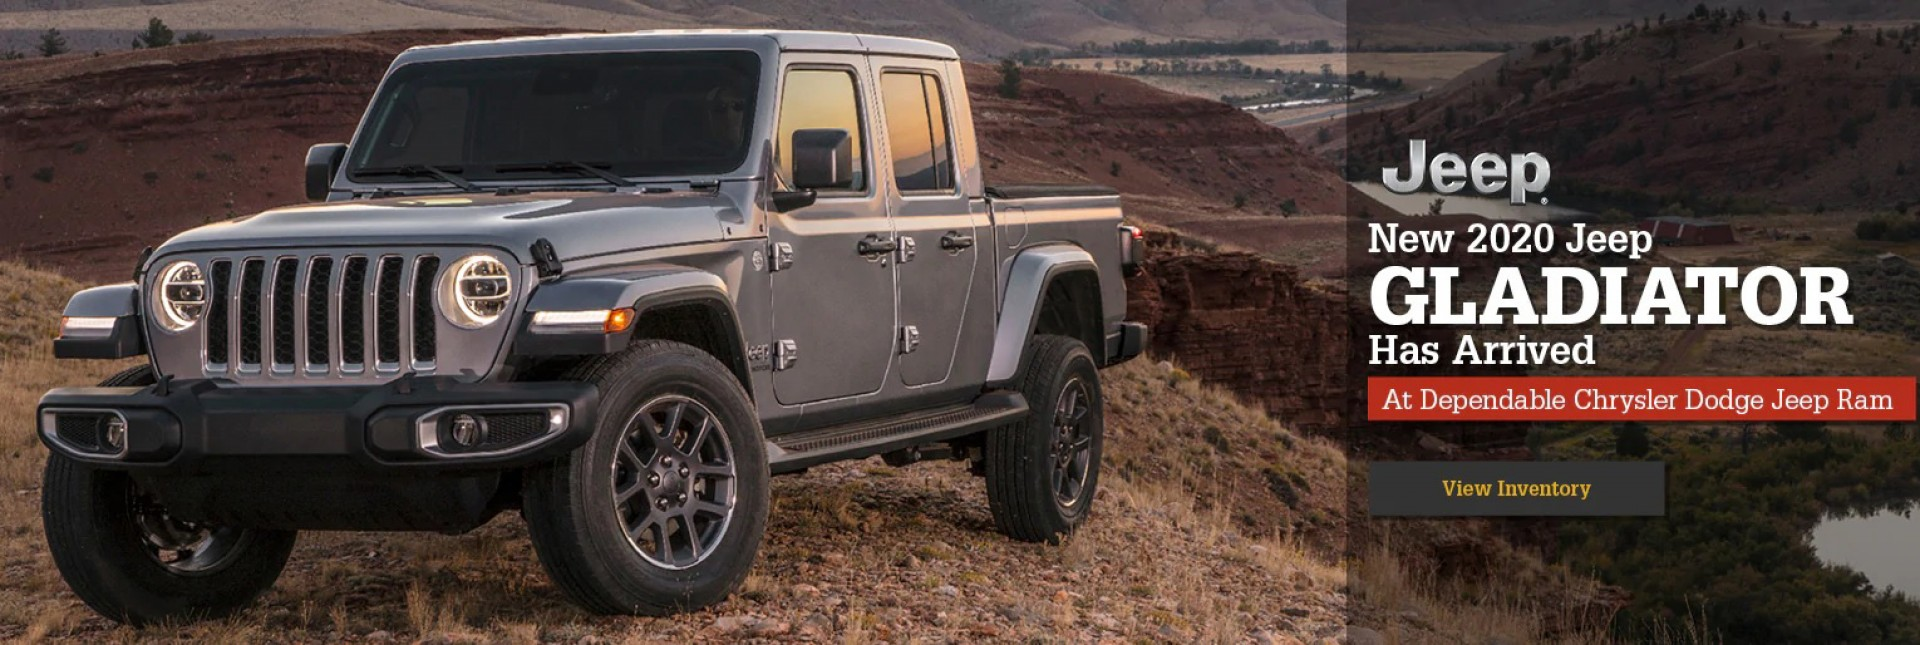 2020 Jeep Gladiator has arrived! View Inventory.